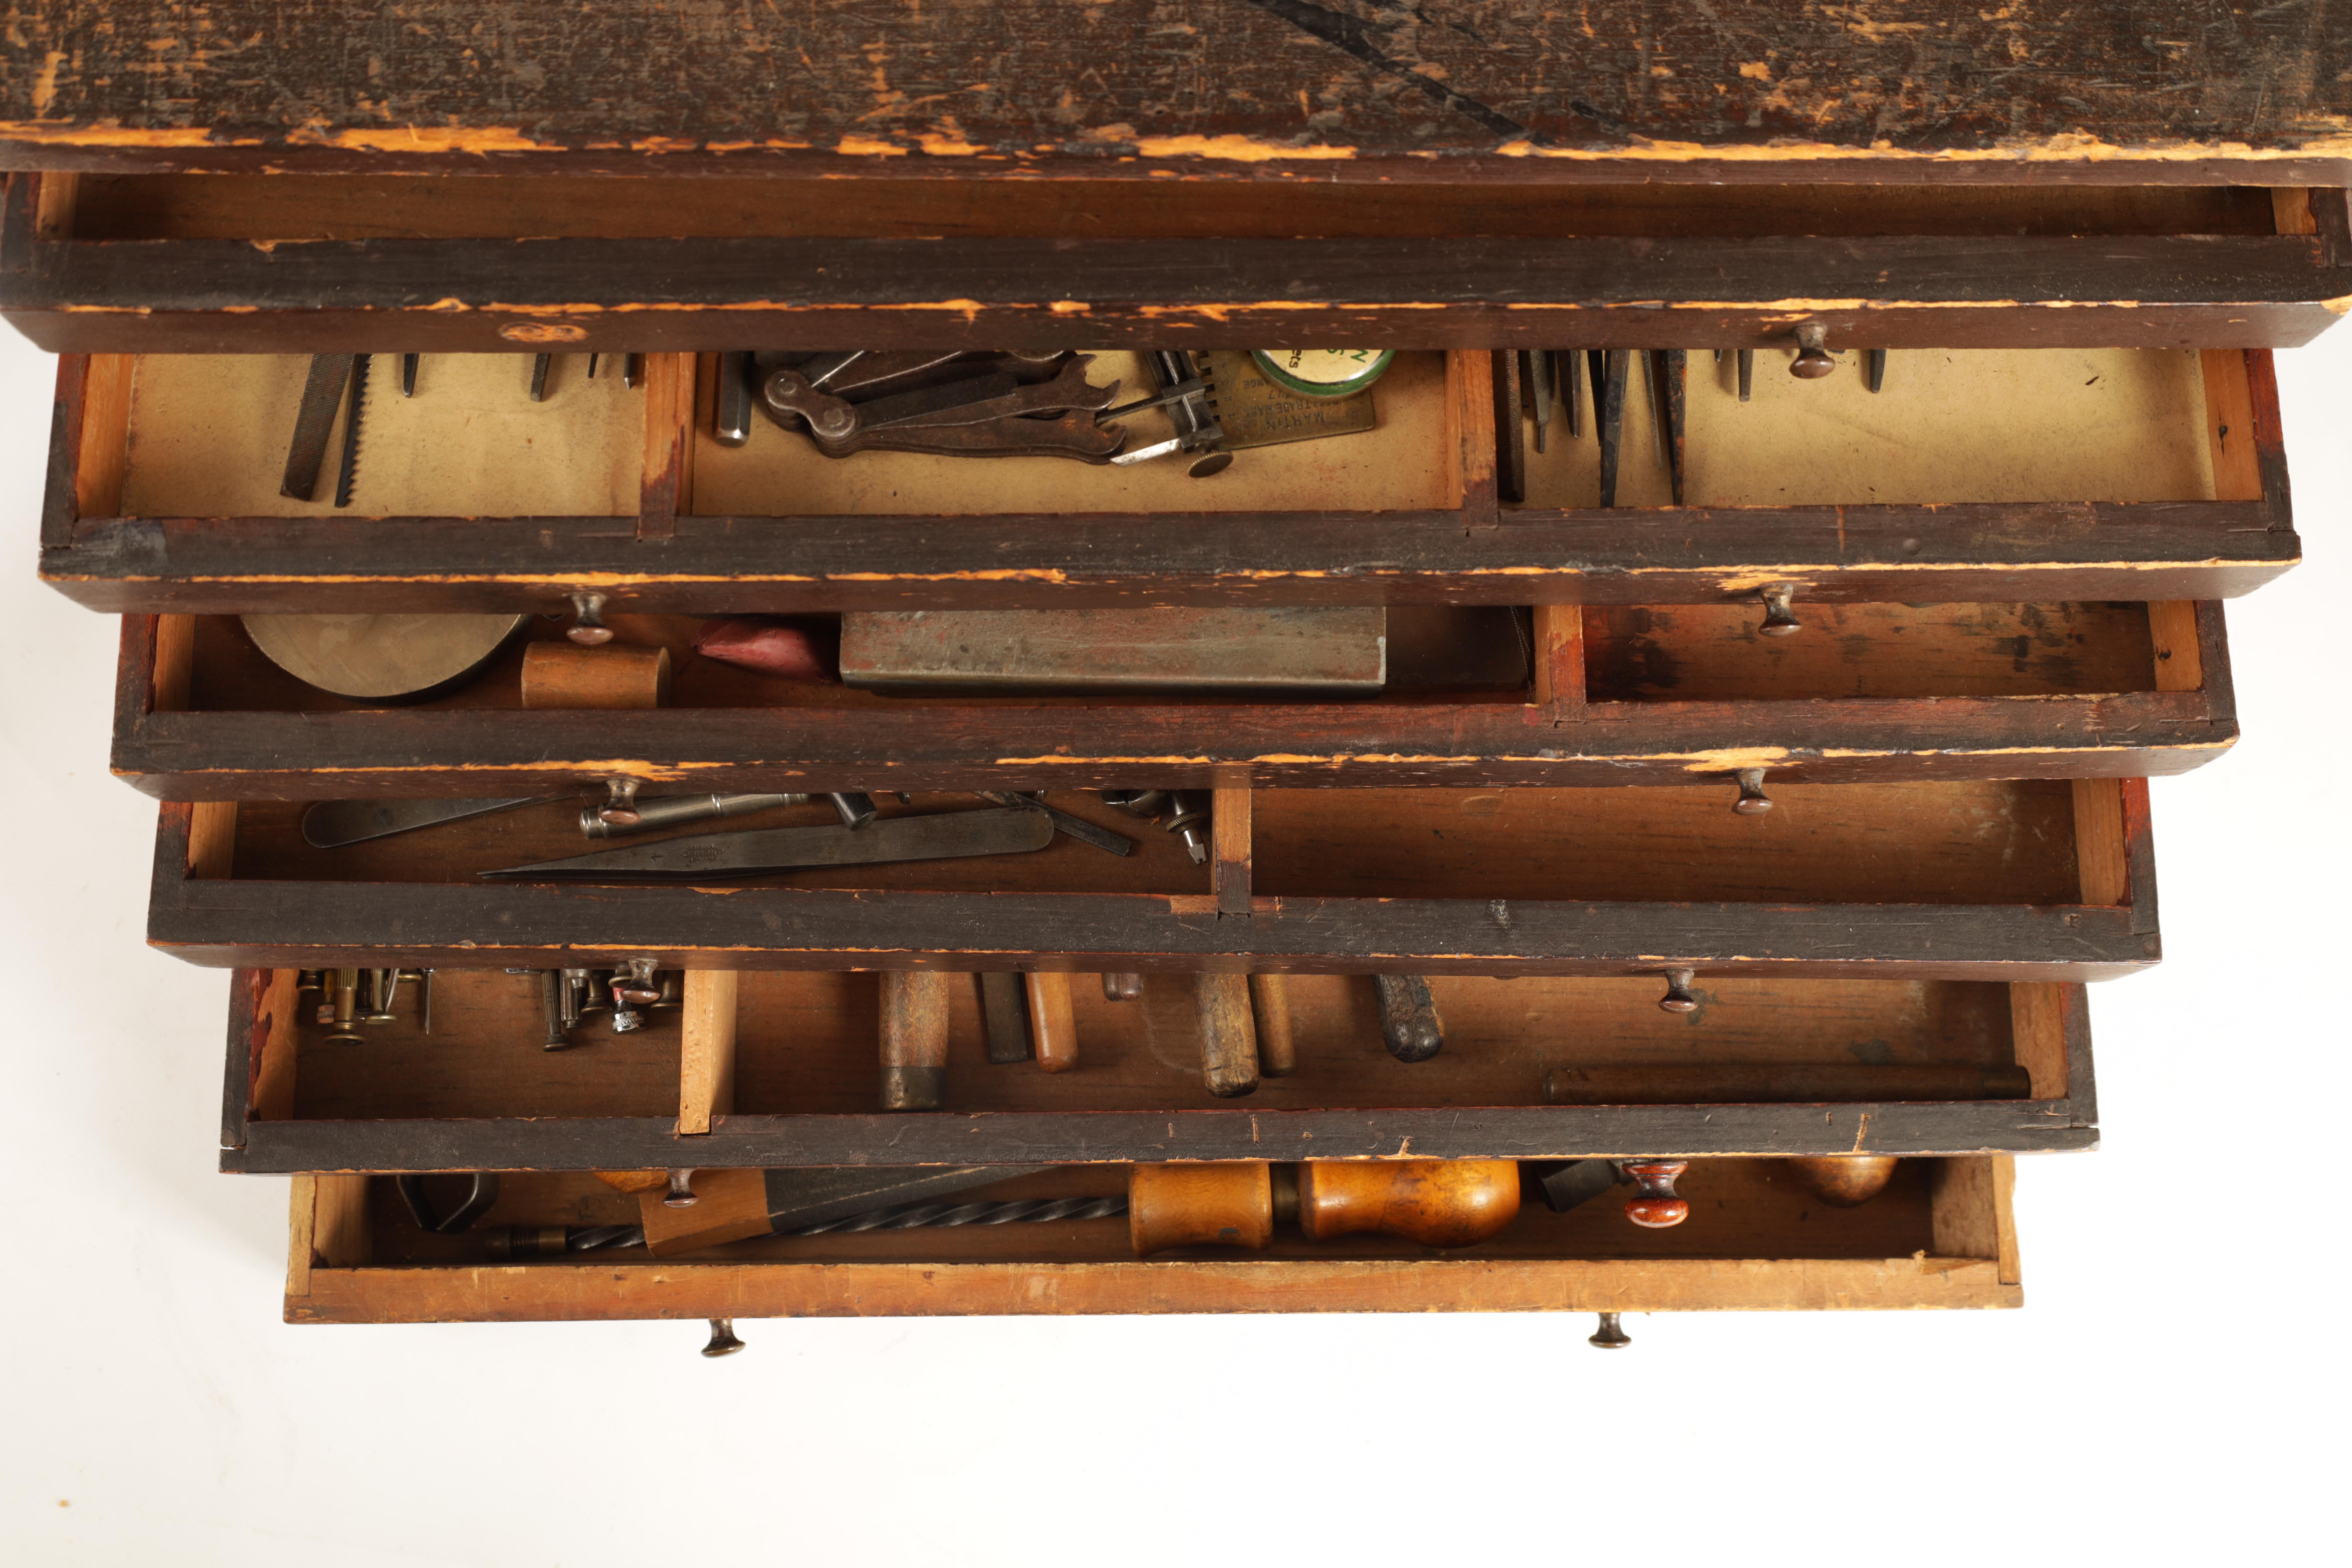 A LARGE COLLECTION OF JEWELERS AND WATCHMAKERS TOOLS contained in a set of pine drawers - Image 4 of 12